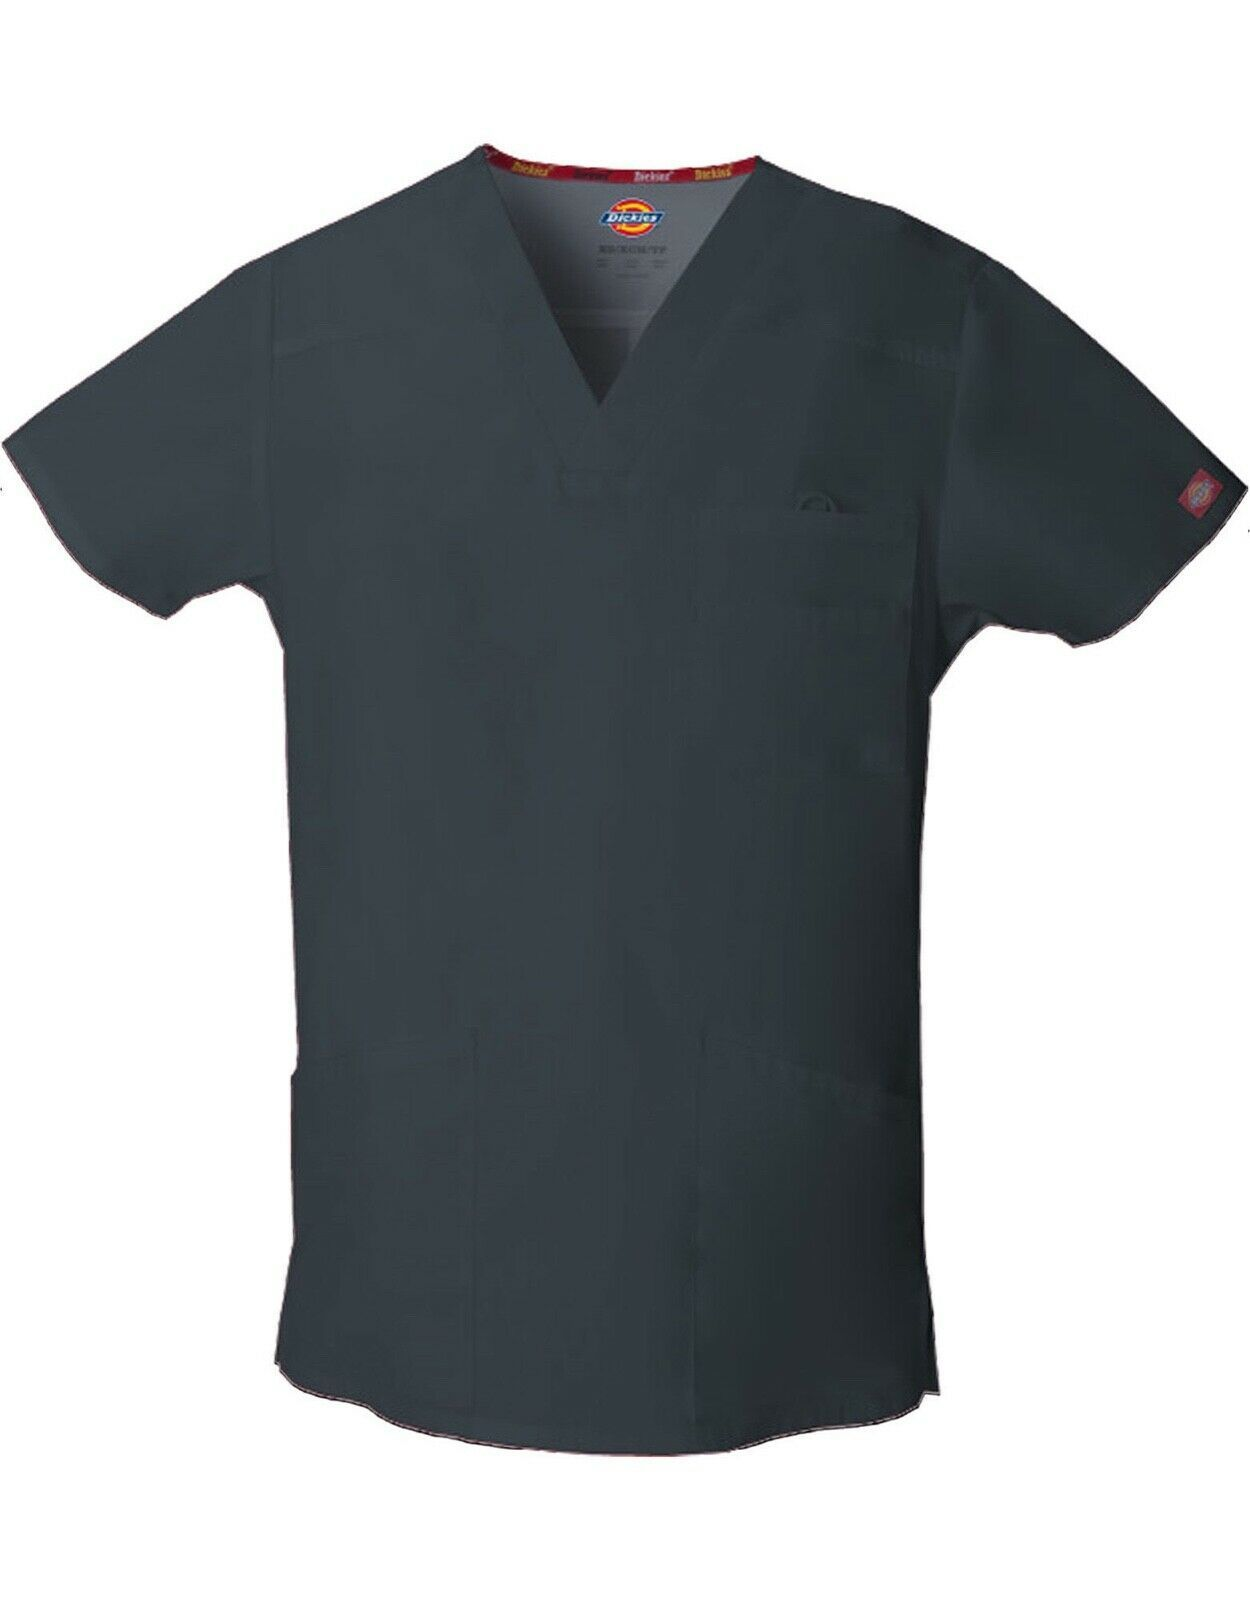 Primary image for Men's EDS Signature V-Neck Scrub Top, Pewter Gray